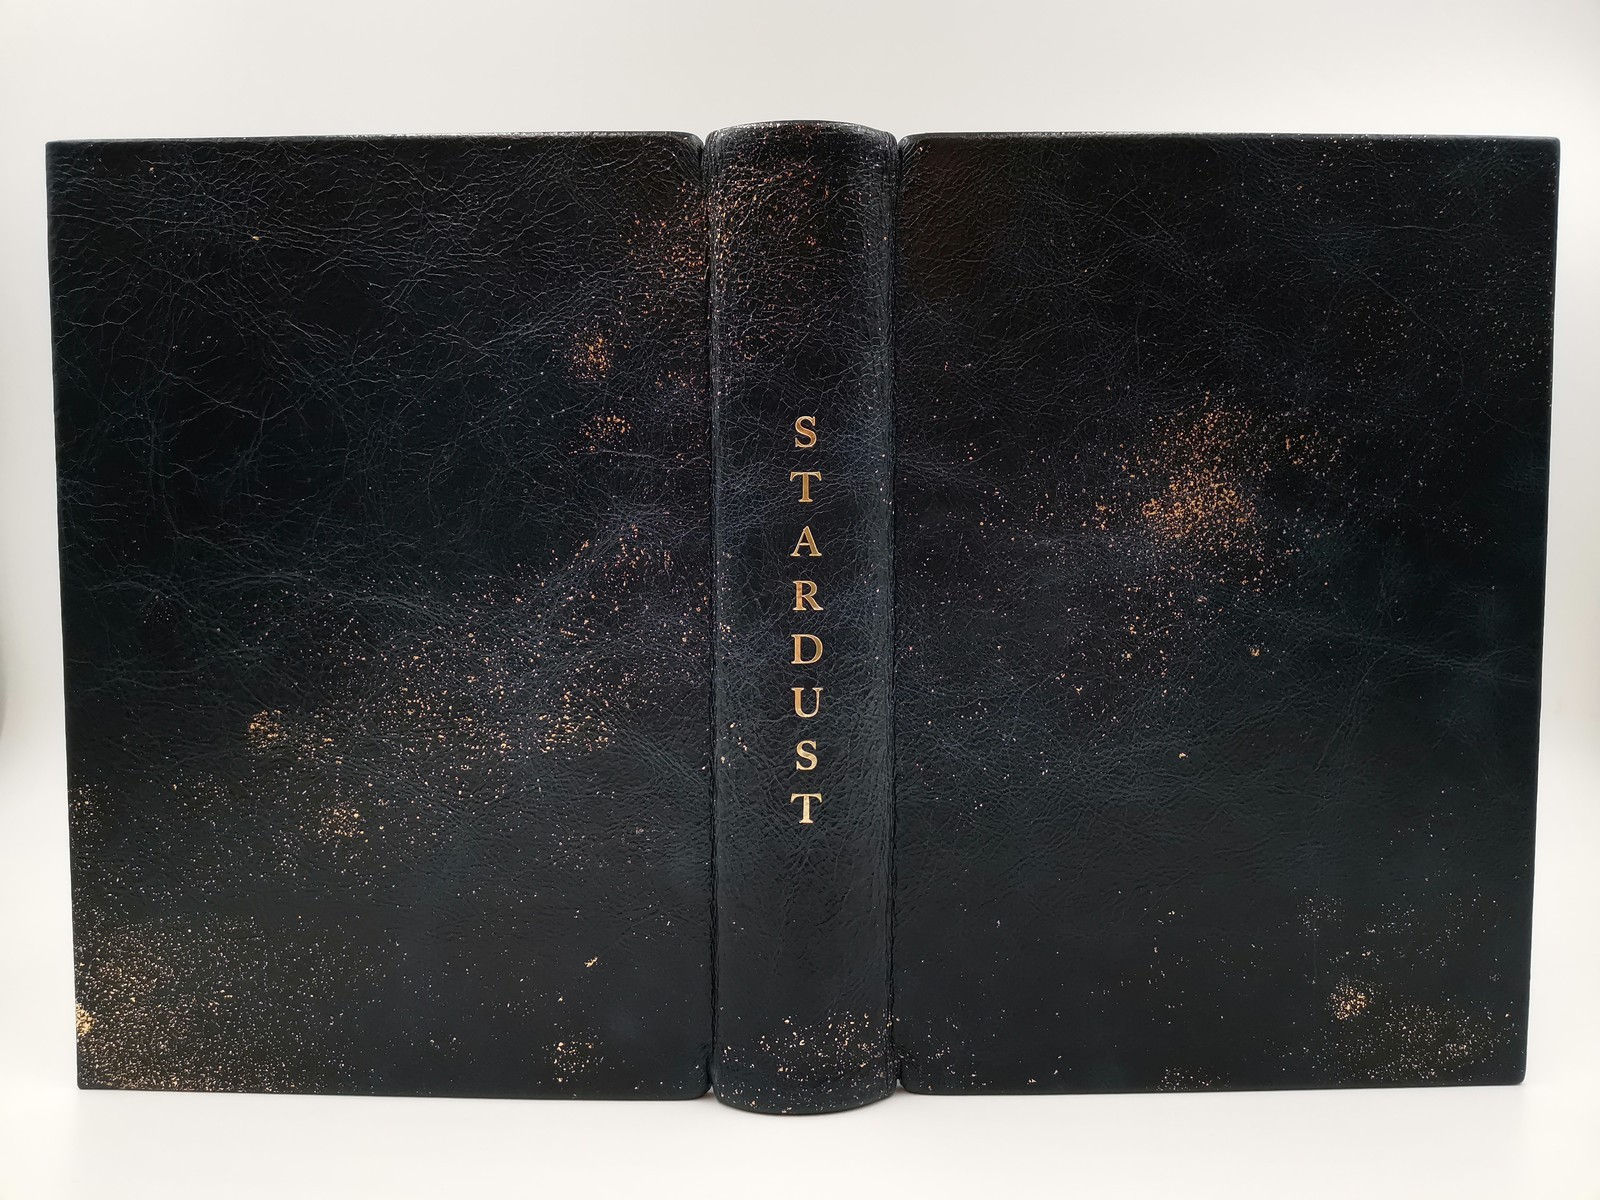 Stardust Neilgaiman Leather Lyrasbooks